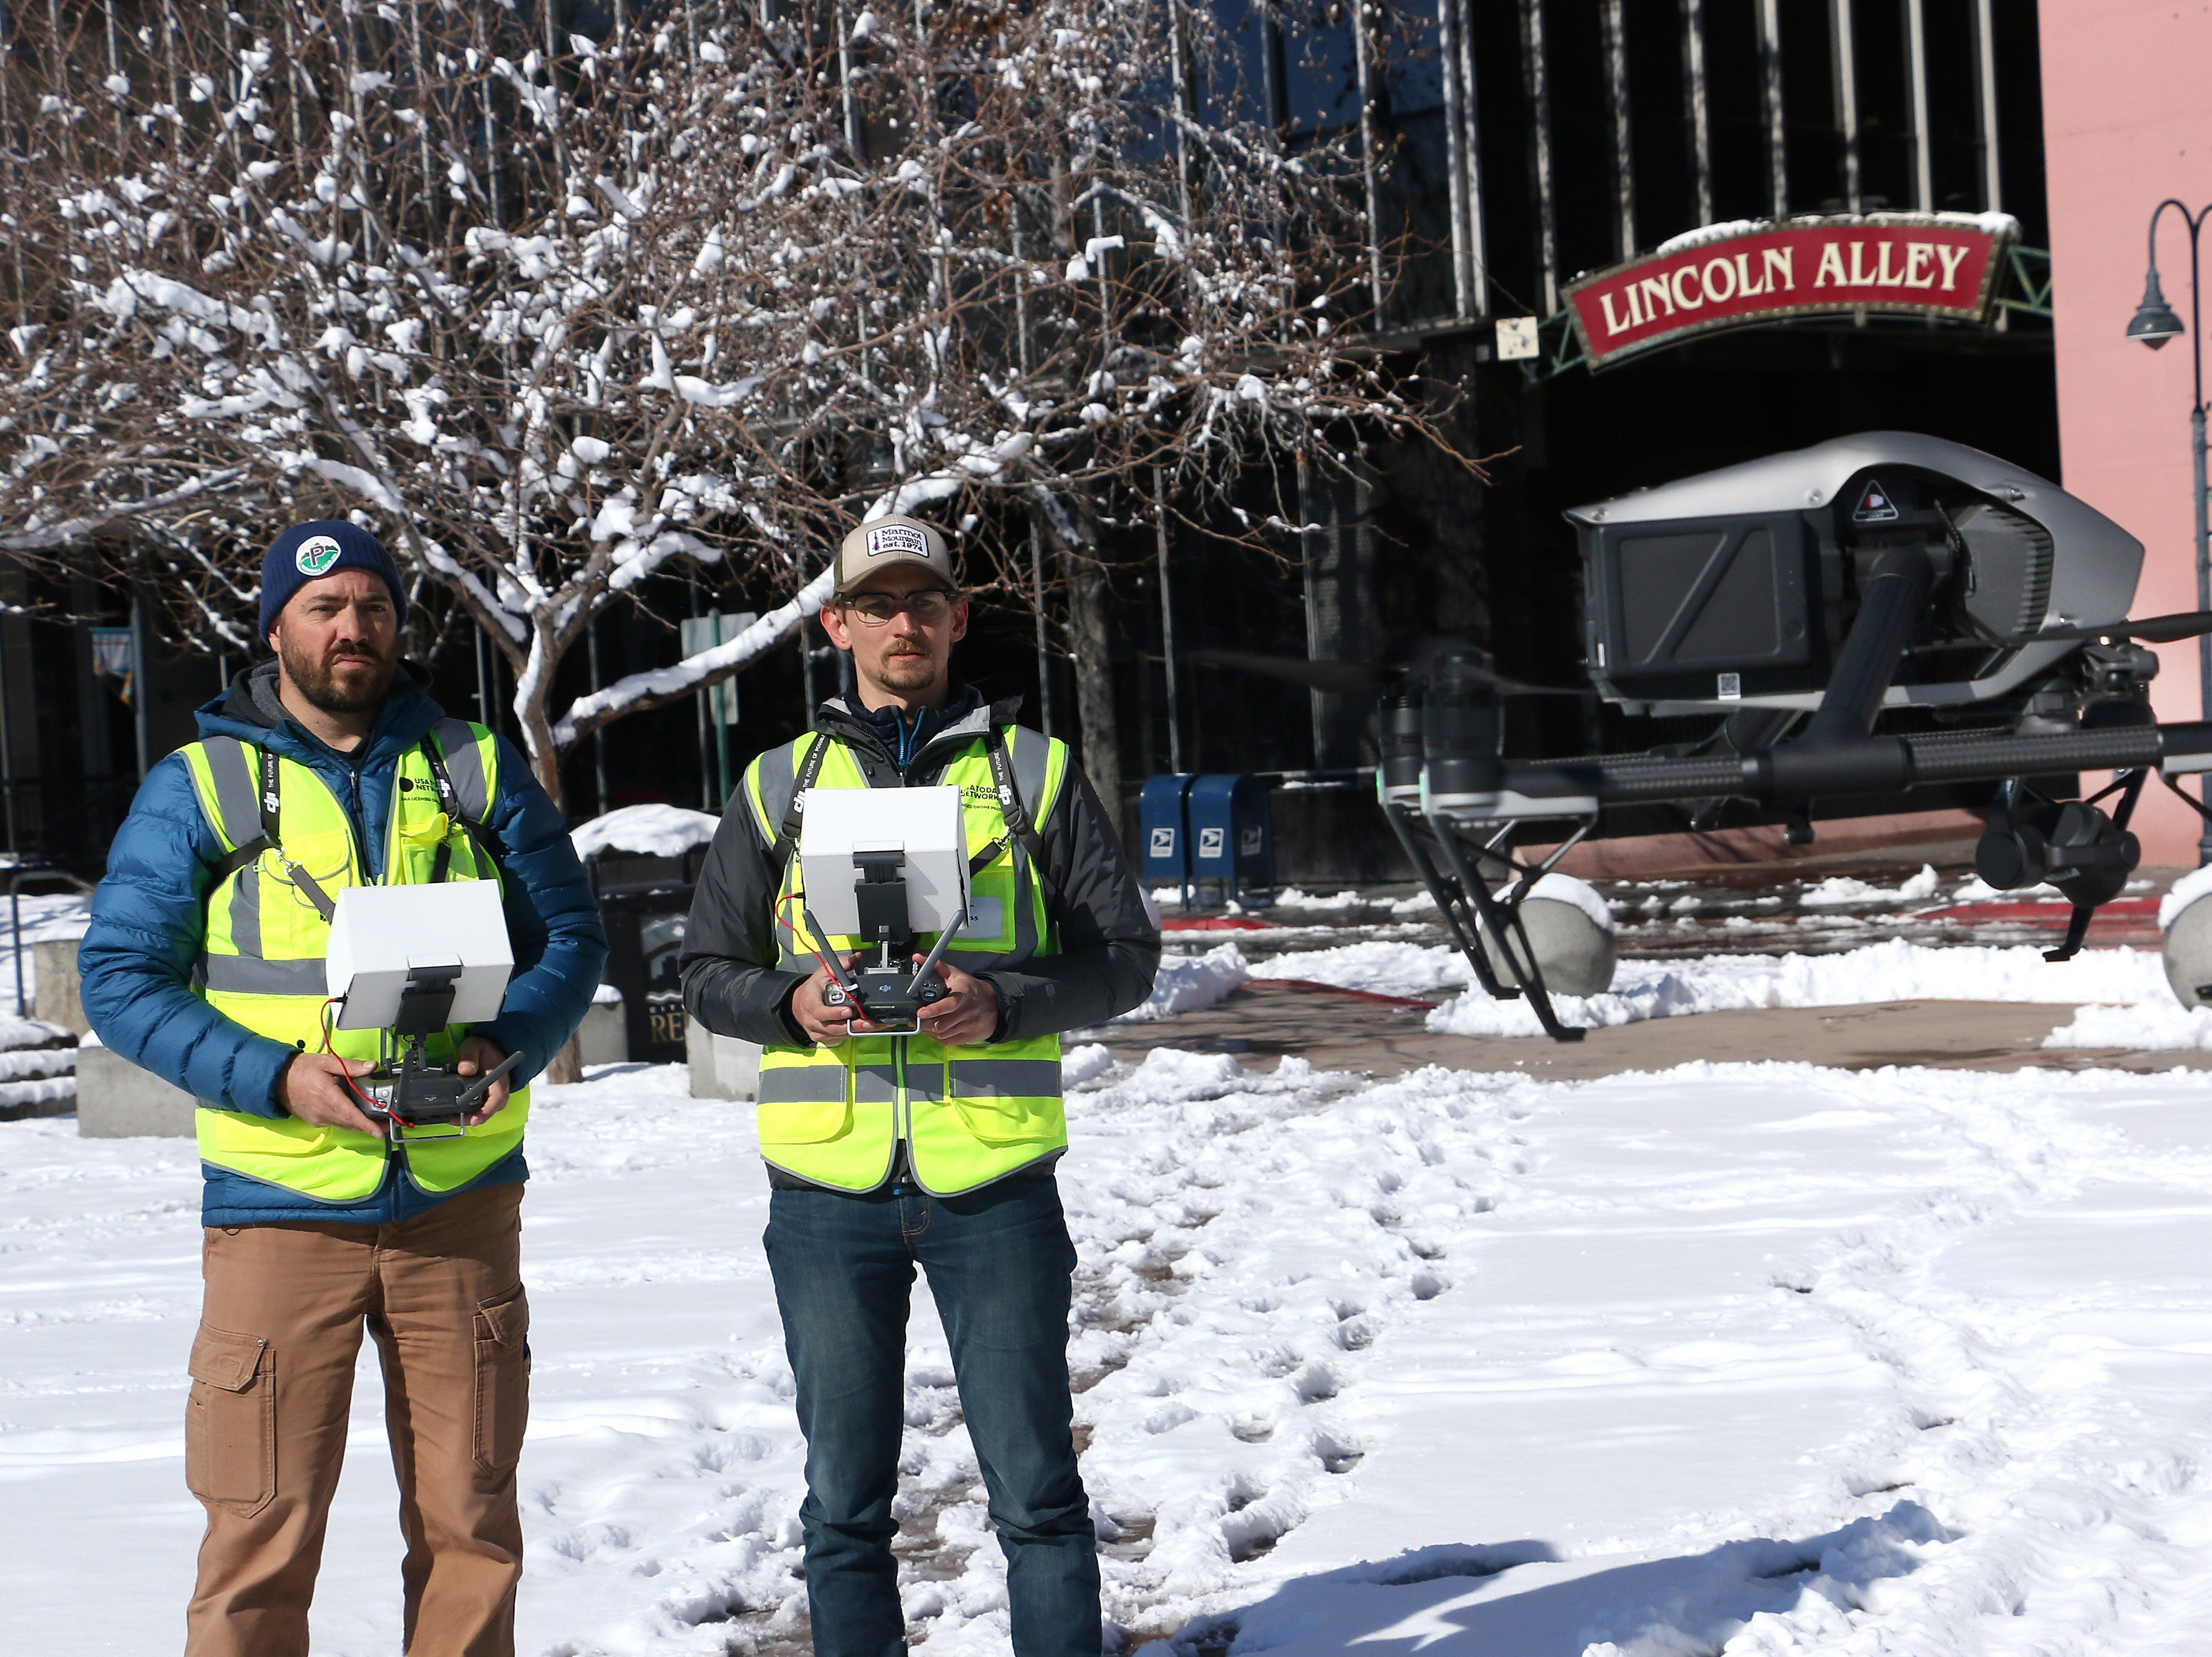 The Reno Gazette Journal drone pilots Ben Spillman, left, and Sam Gross are seen working in Reno's City Plaza on Feb. 10, 2019.